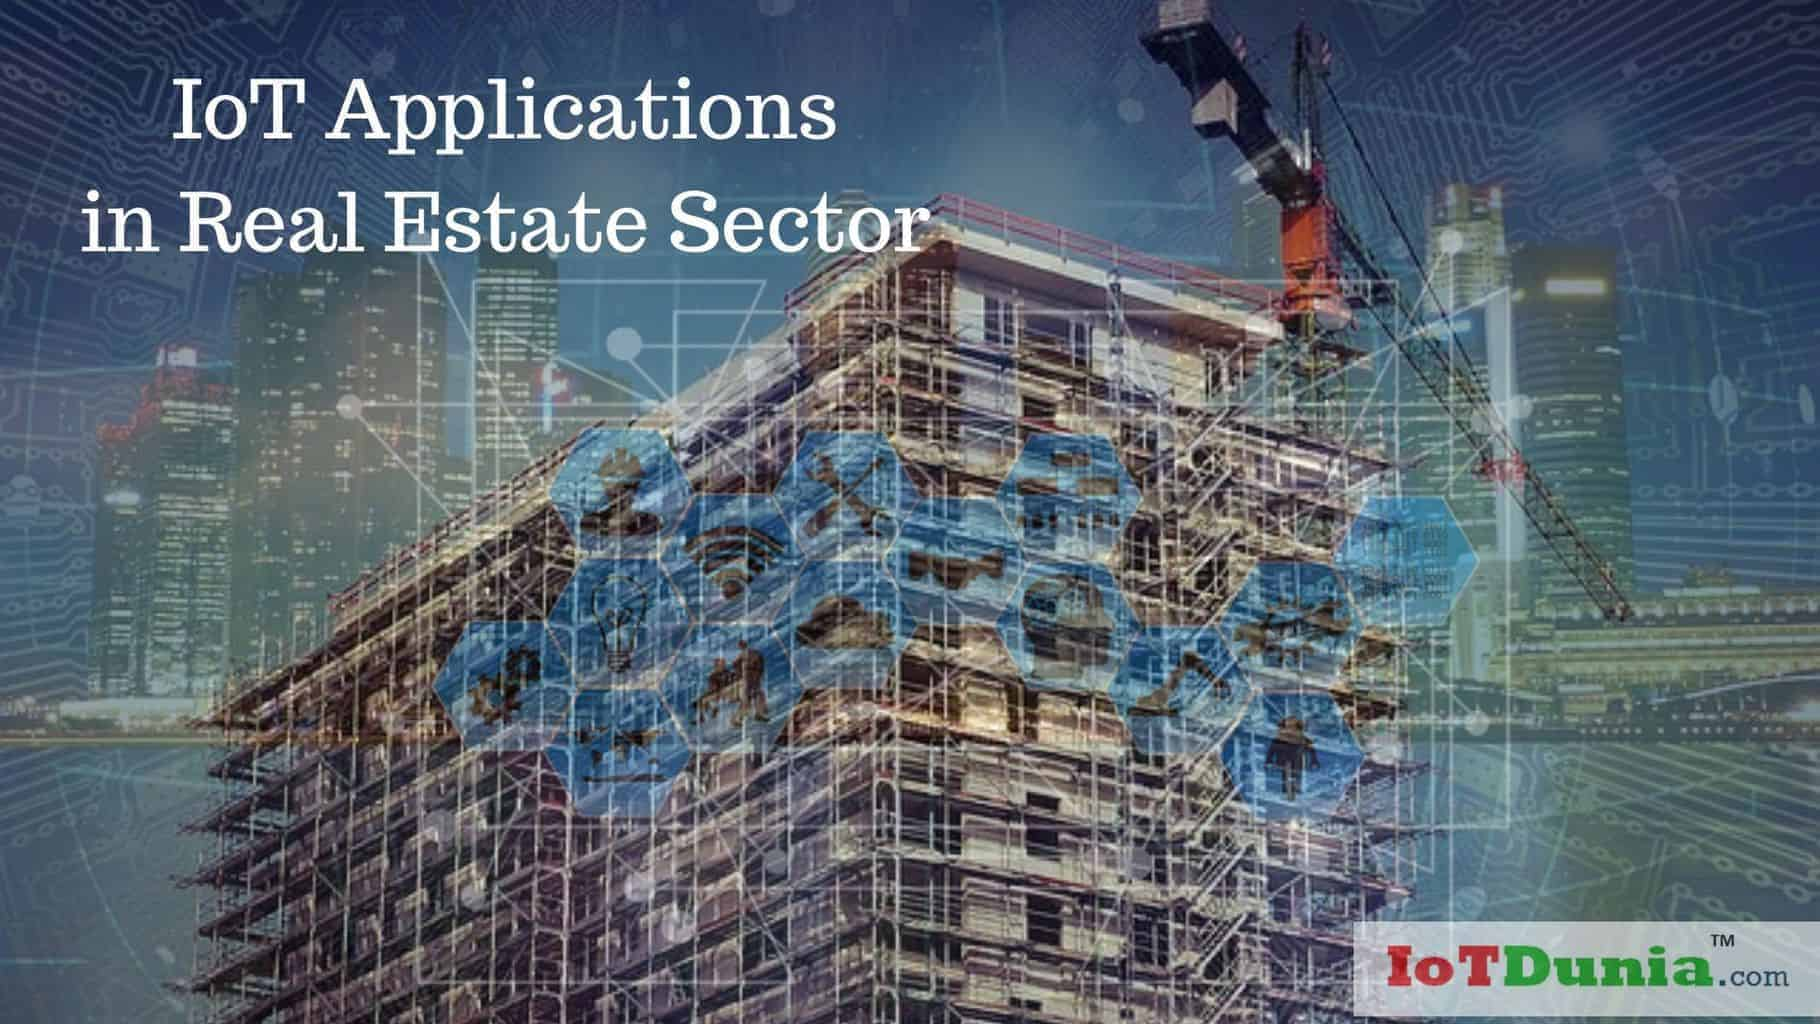 6 best IoT Applications in Real Estate Sector